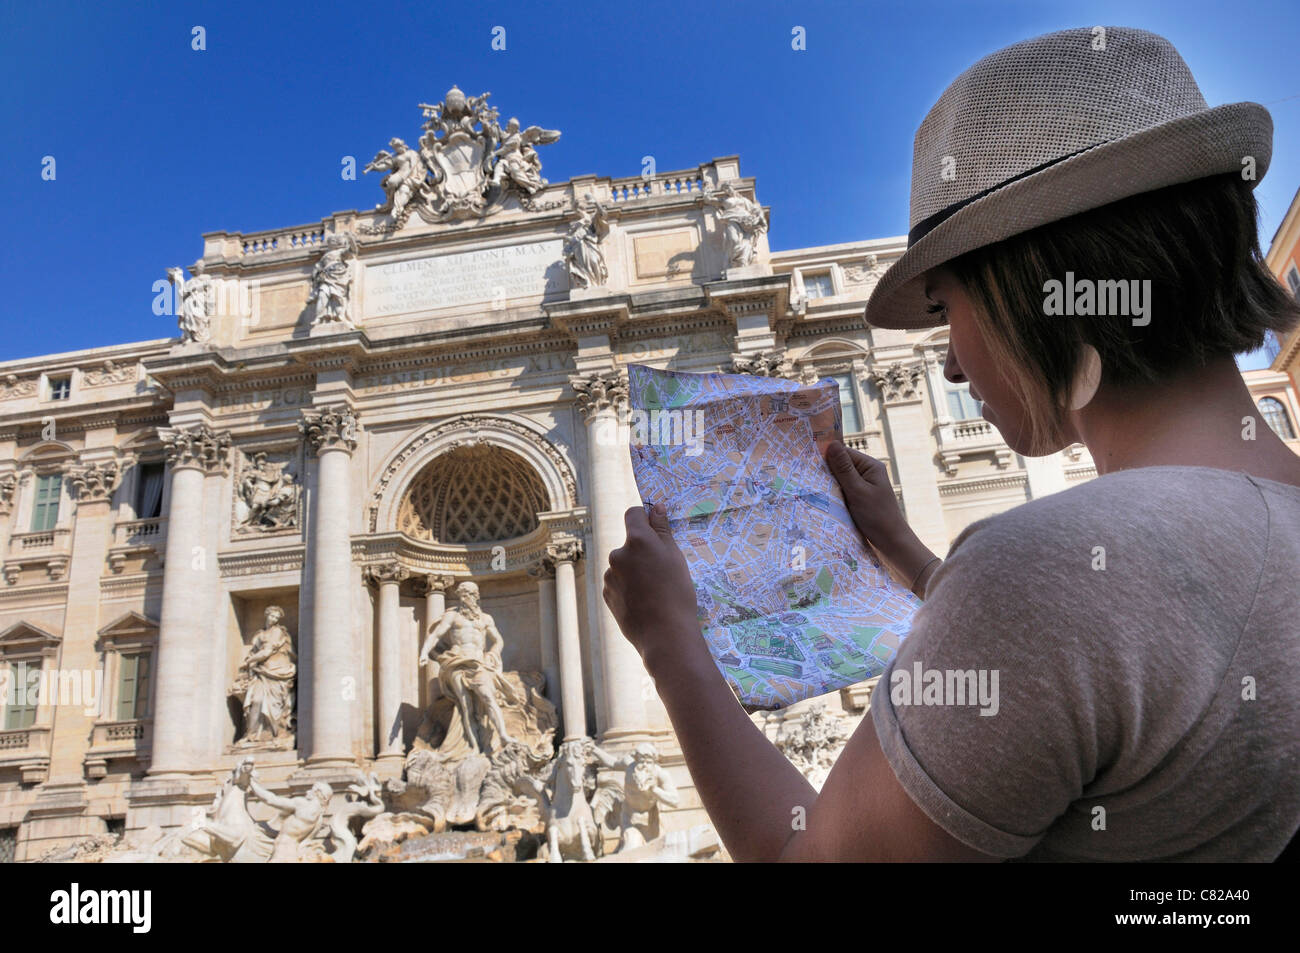 Tourist looking a map at the Trevi Fountain in Rome, Italy - Stock Image